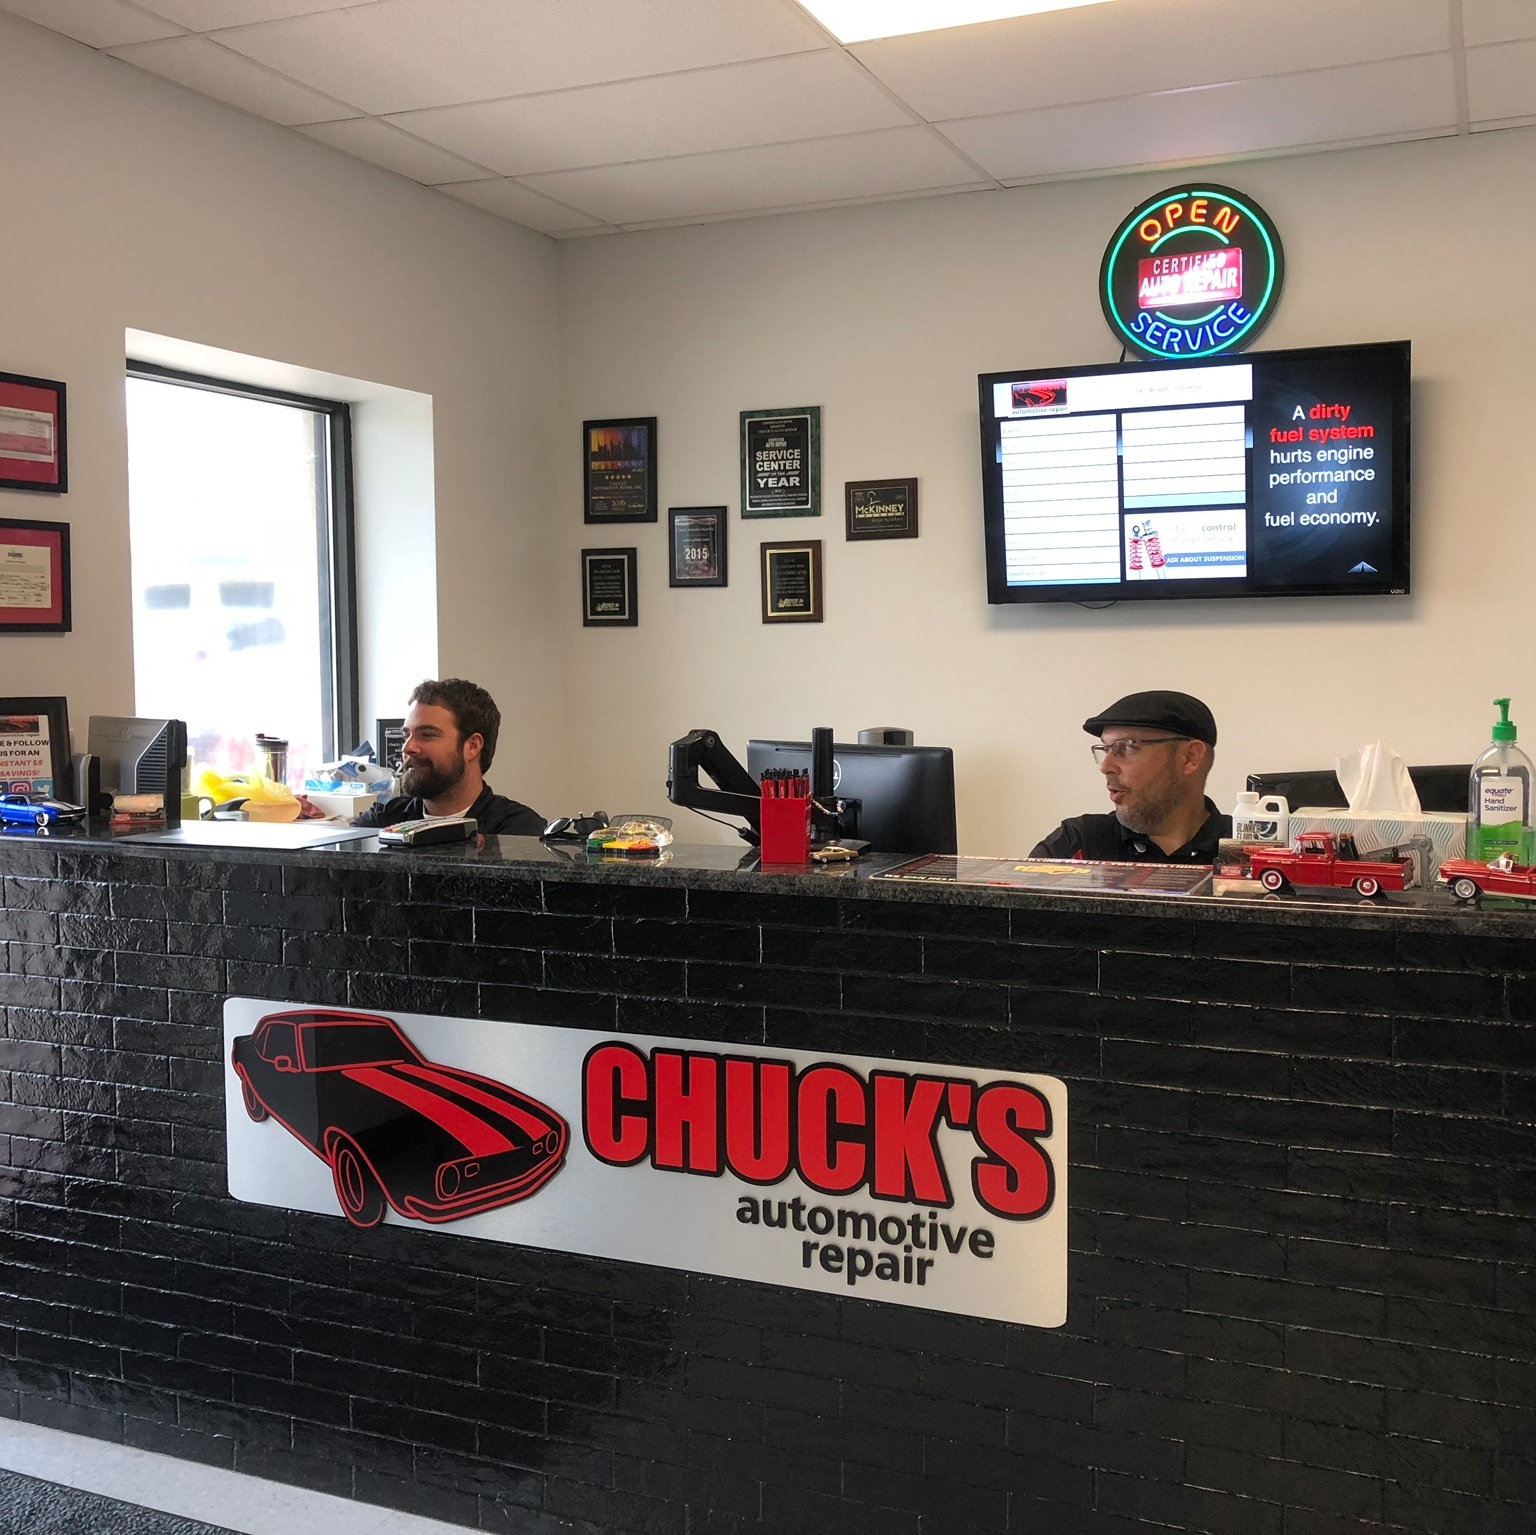 Who We Are - We founded Chuck's Automotive Repair with the belief that hard work and dedication always result in happy customers. To us, working tirelessly means a job well done.